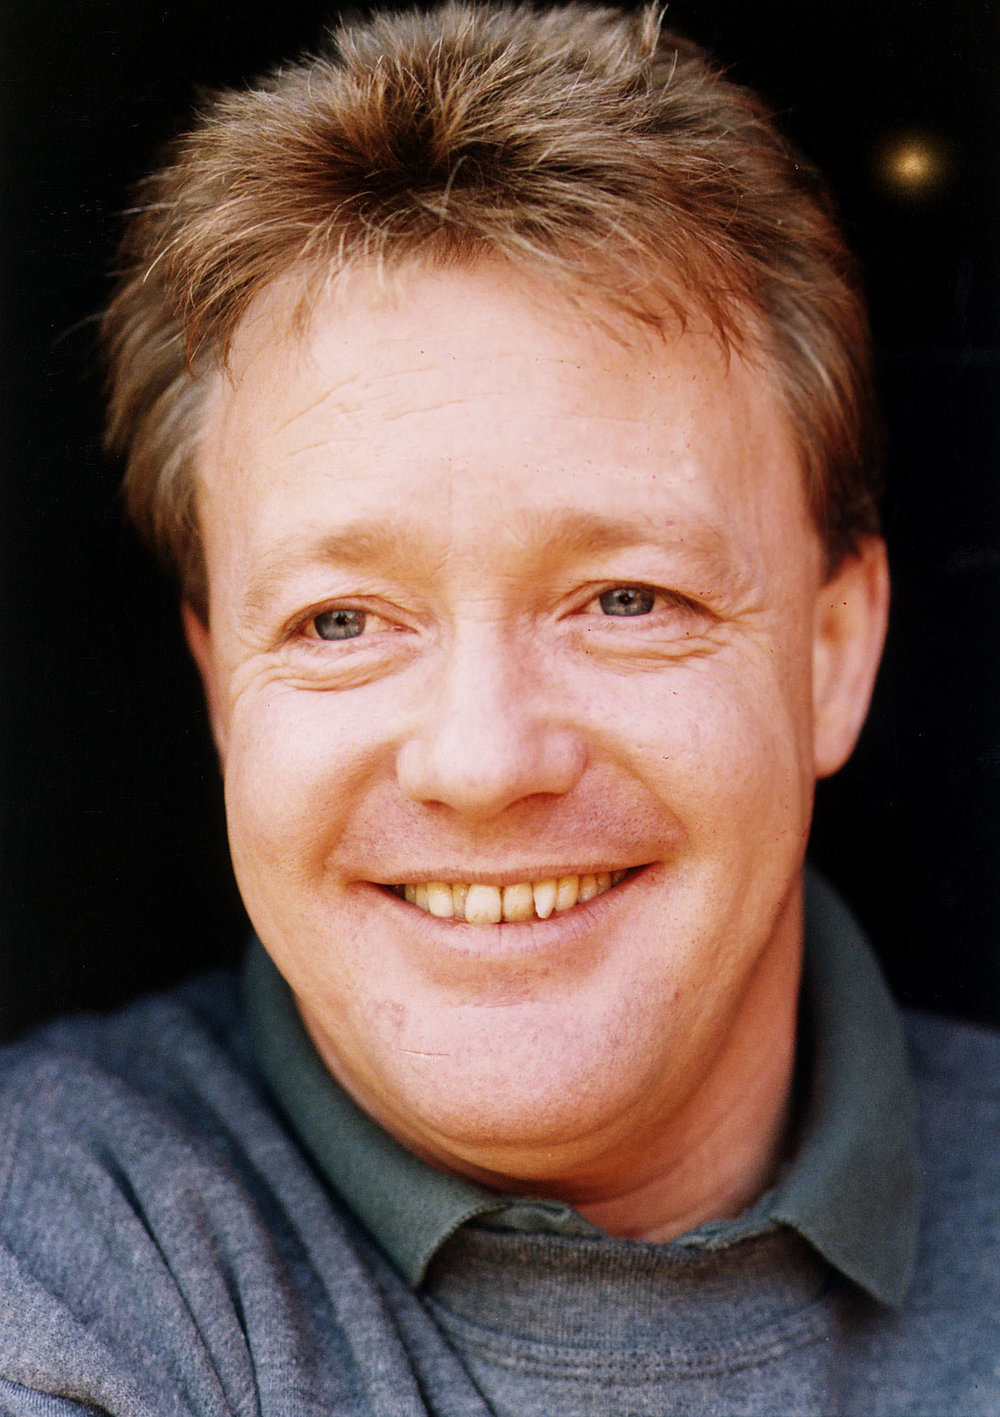 keith-chegwin-young.jpg